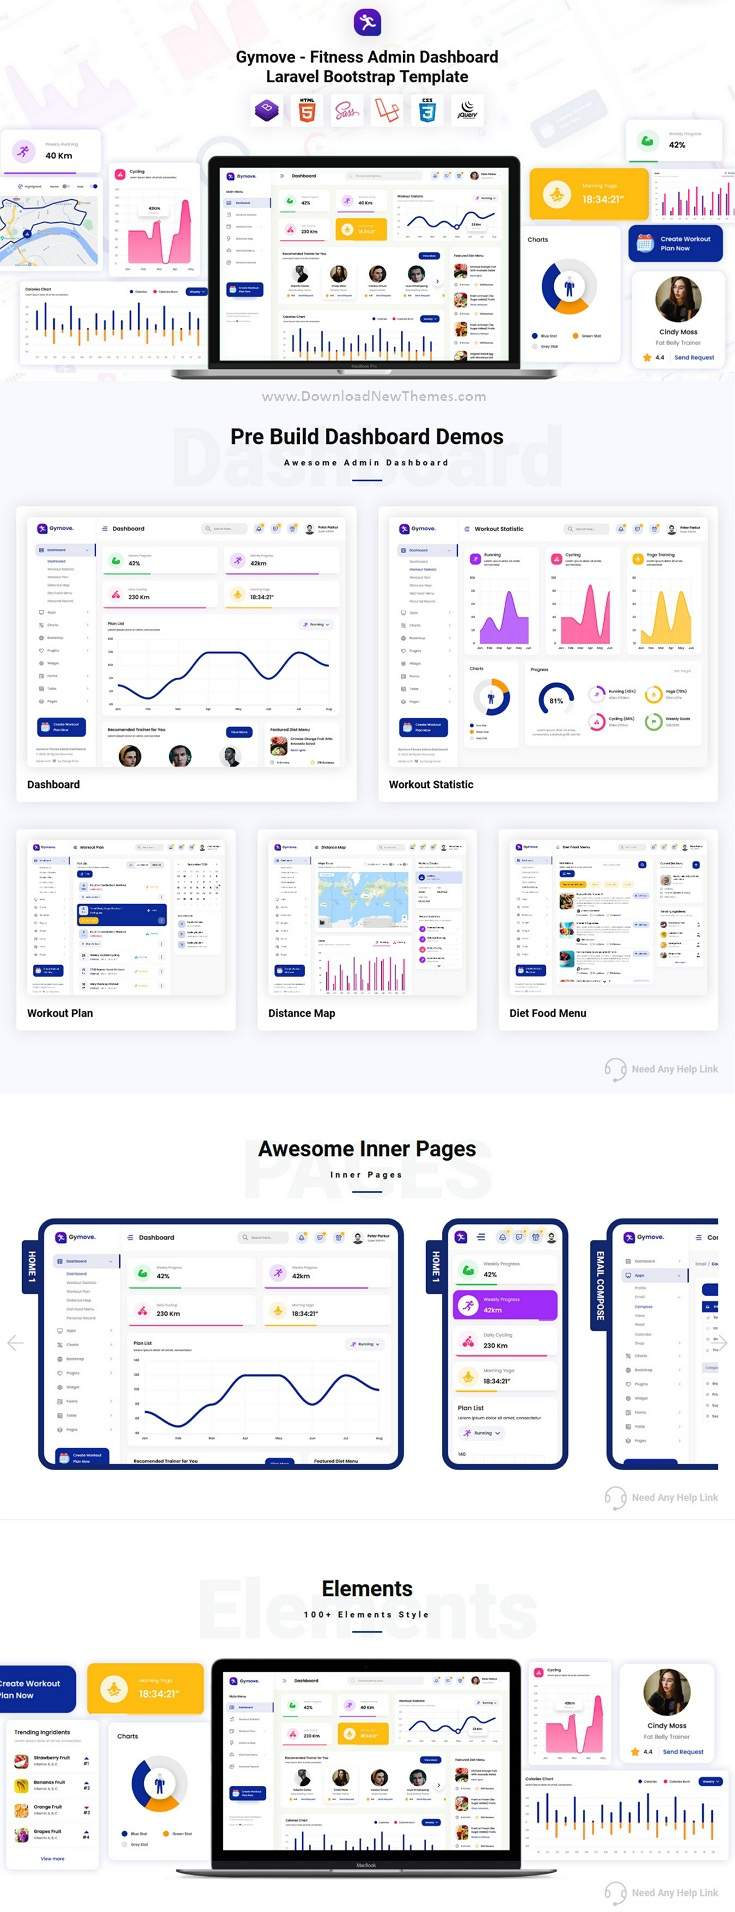 Fitness Admin Dashboard Laravel Bootstrap Template